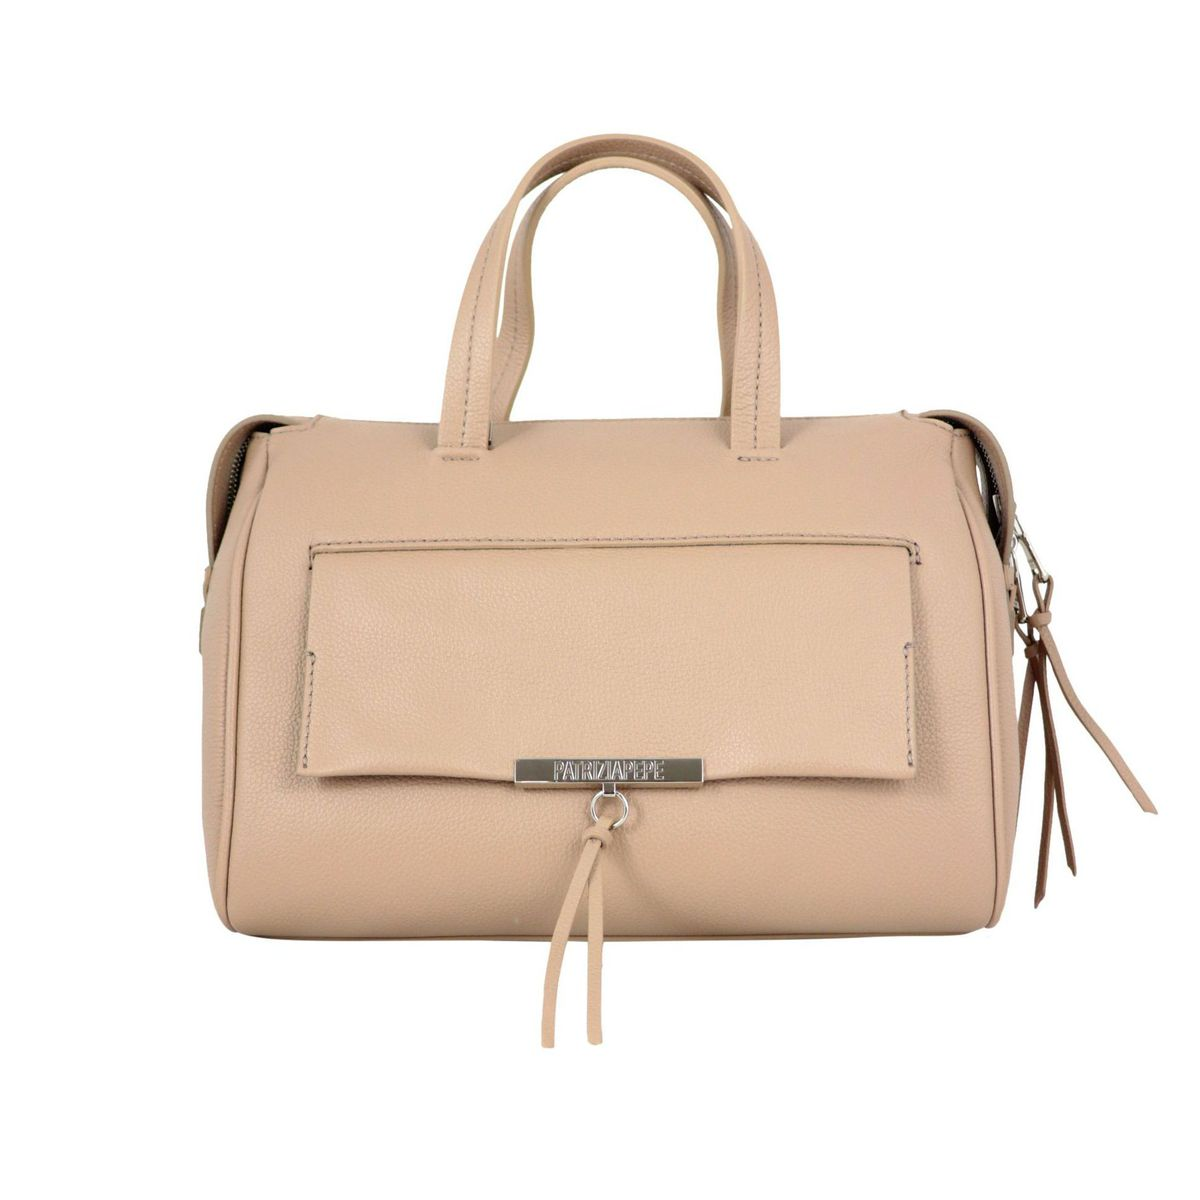 Top case in textured leather with logo and front pocket Beige Patrizia Pepe